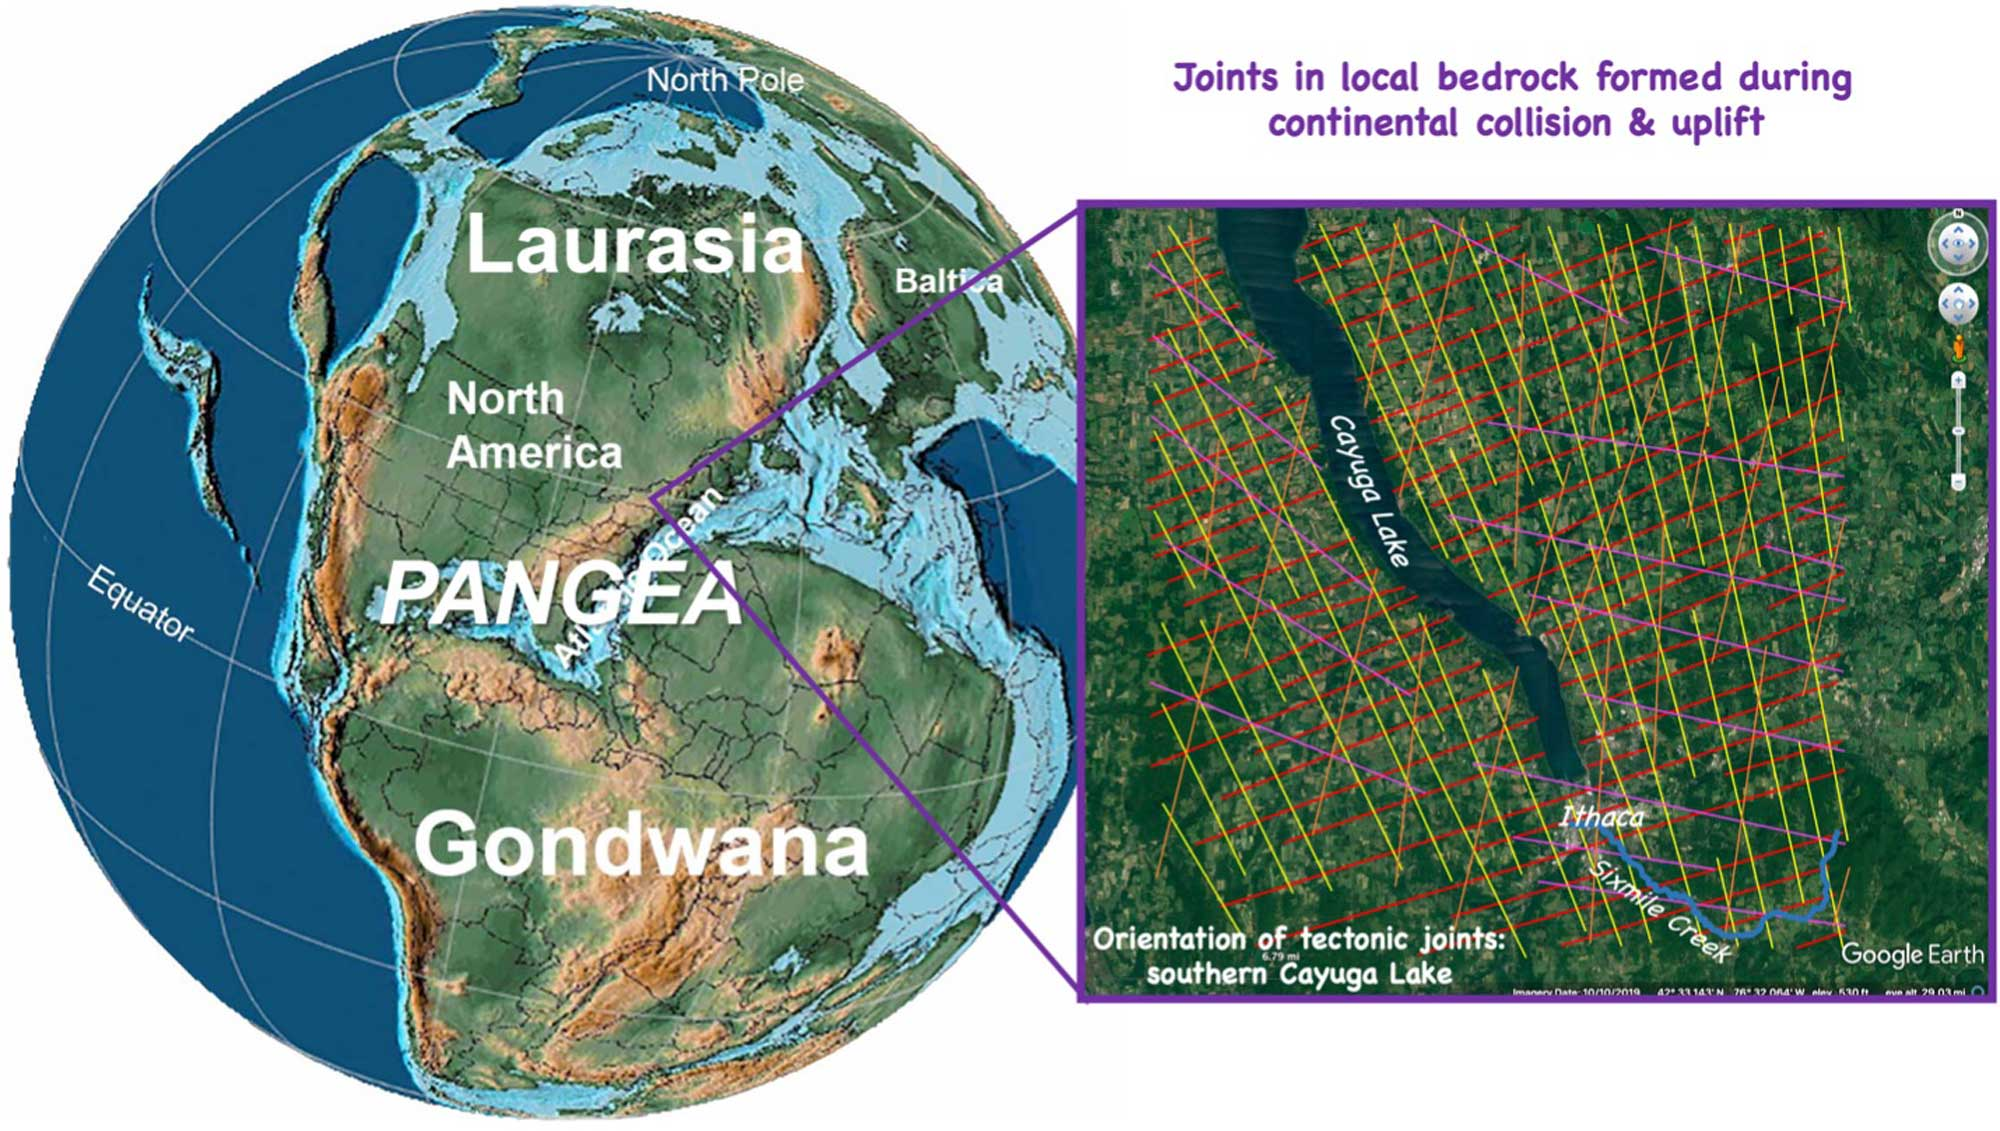 Image showing a reconstruction of the Earth 200 million years ago, with an inset image showing the distribution of joints around Cayuga Lake, New York.